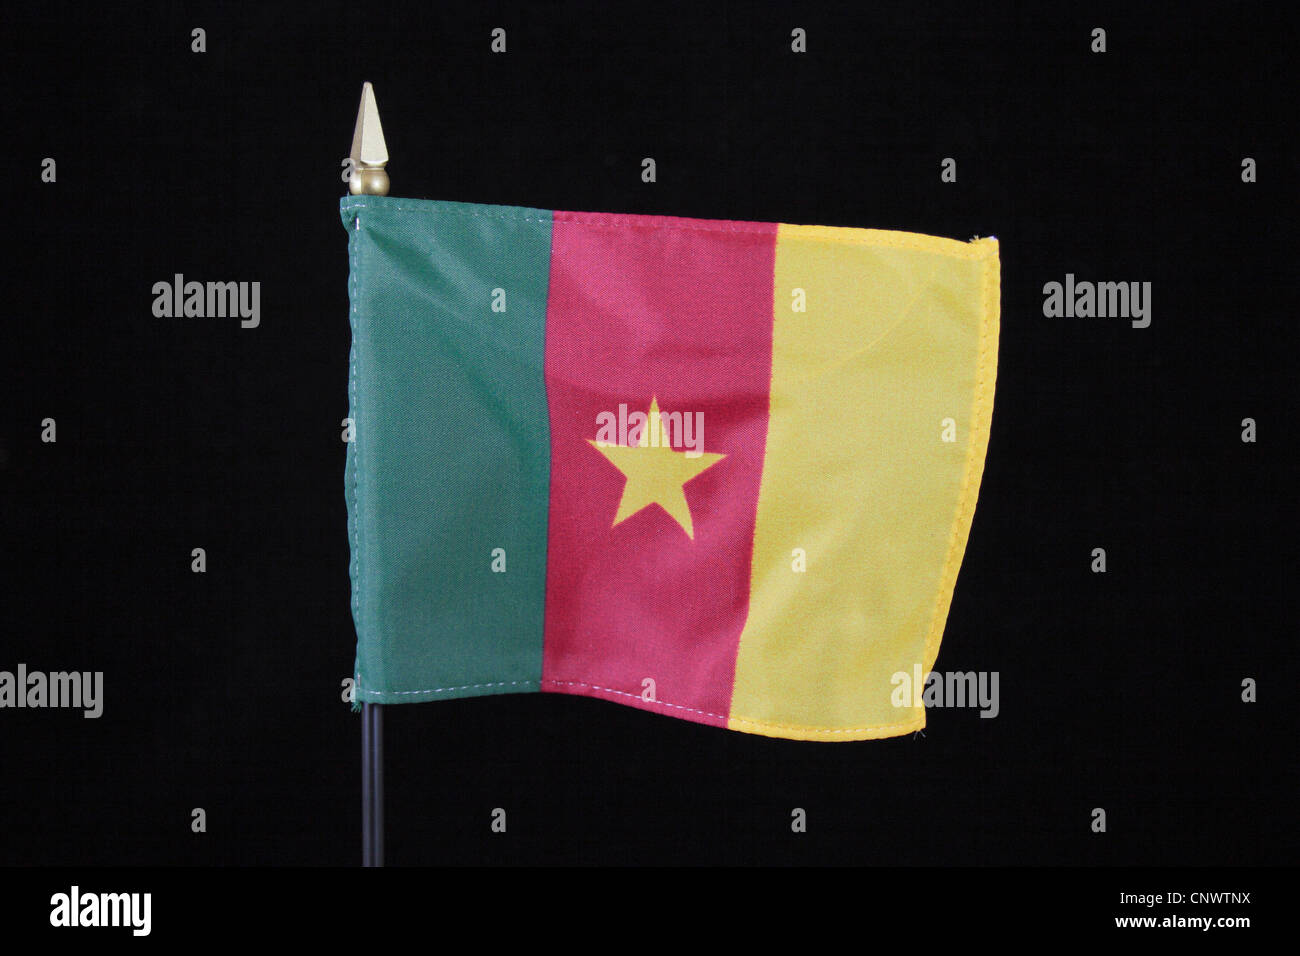 The national flag of the Republic of Cameroon on a black background. - Stock Image